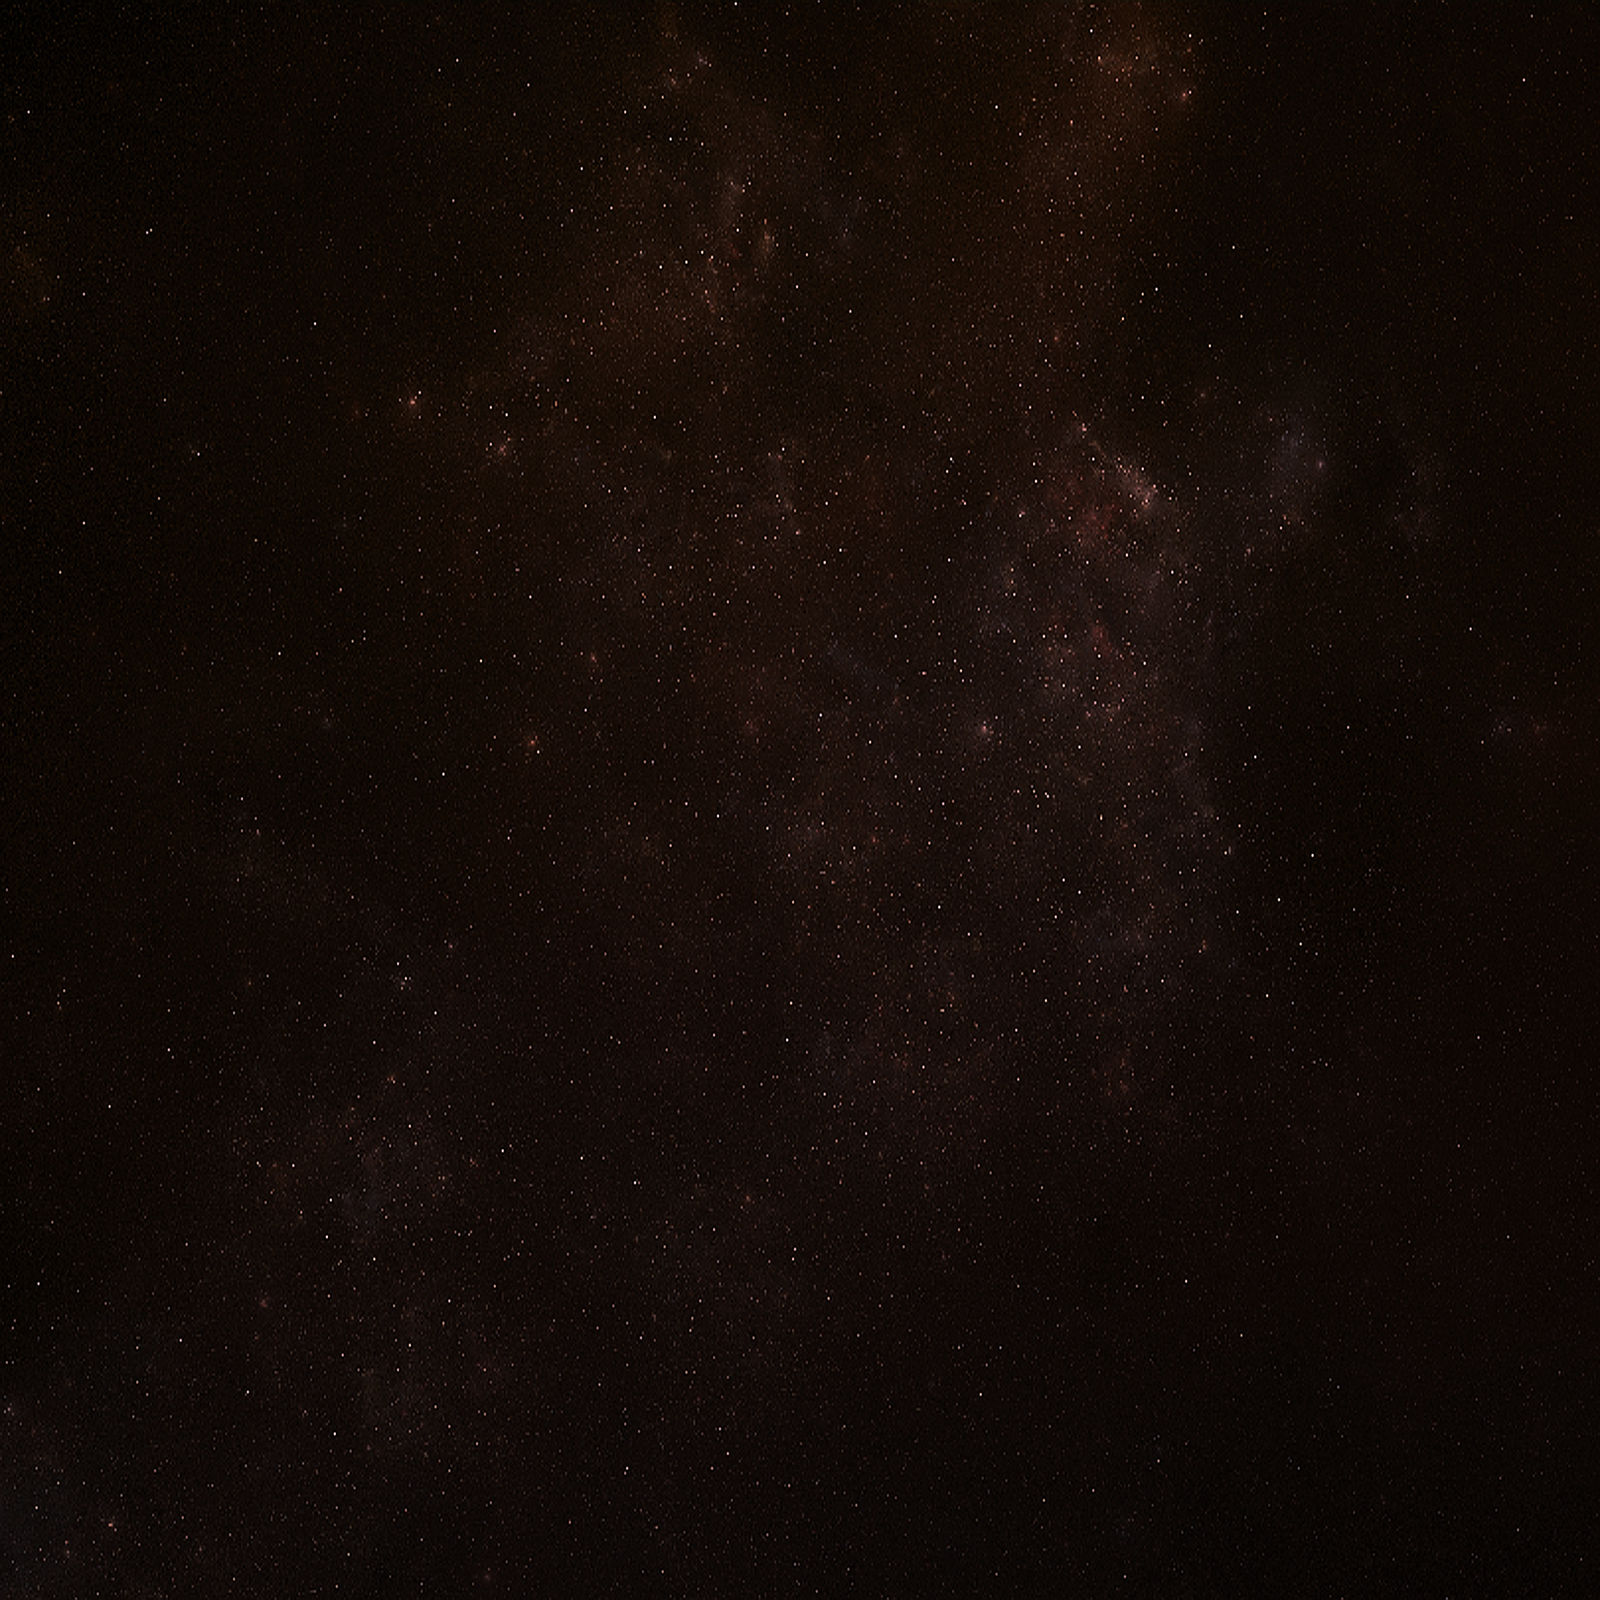 Celestial Starfiled Background